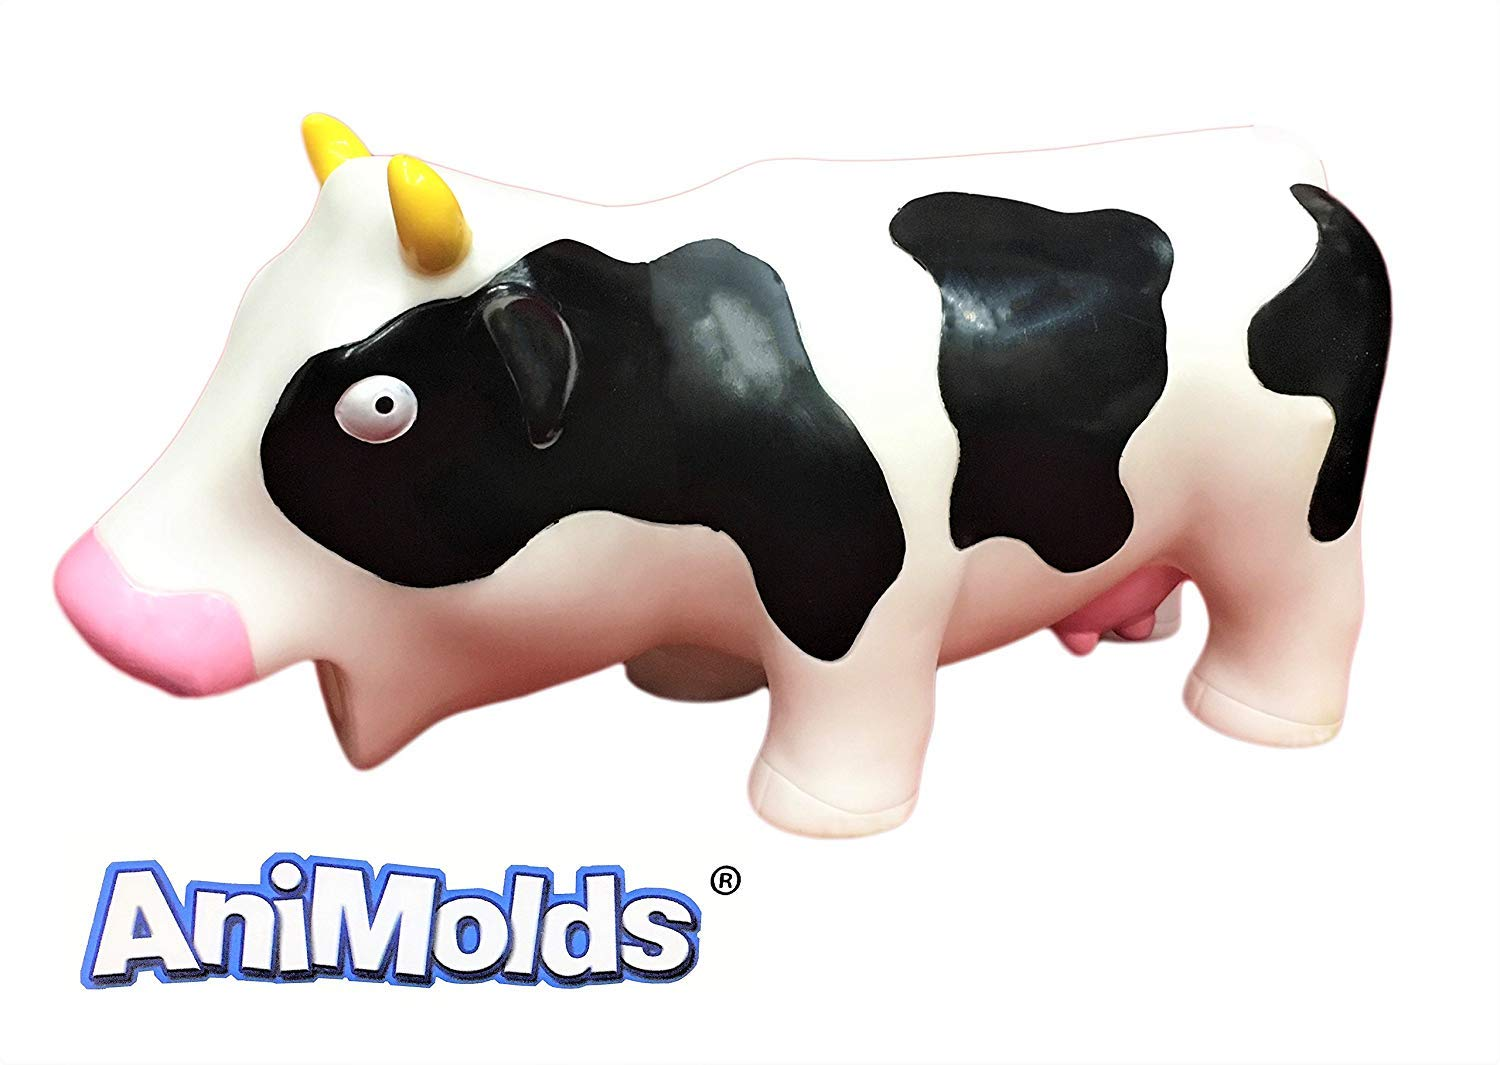 Animolds Squeeze Me and Hear Me Moo Squishy Cow Sensory Toys Party Supplies Pack (6 Pack) by Animolds (Image #2)